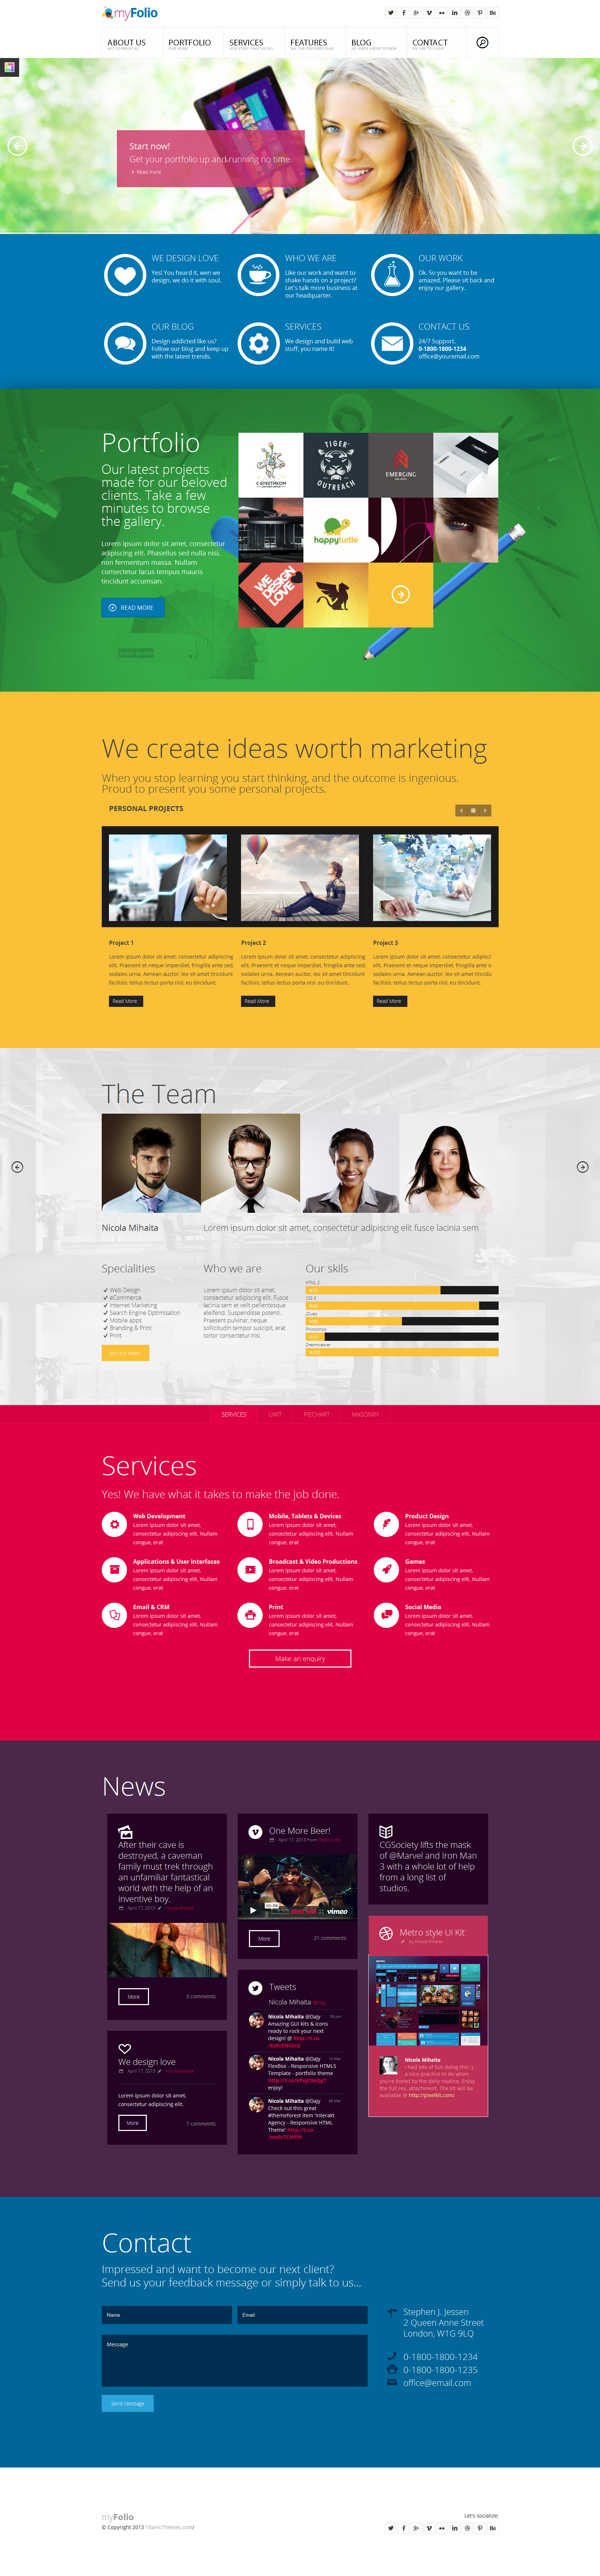 Myfolio parallax onepage html5 template by dajydesigns for Free html5 parallax scrolling template